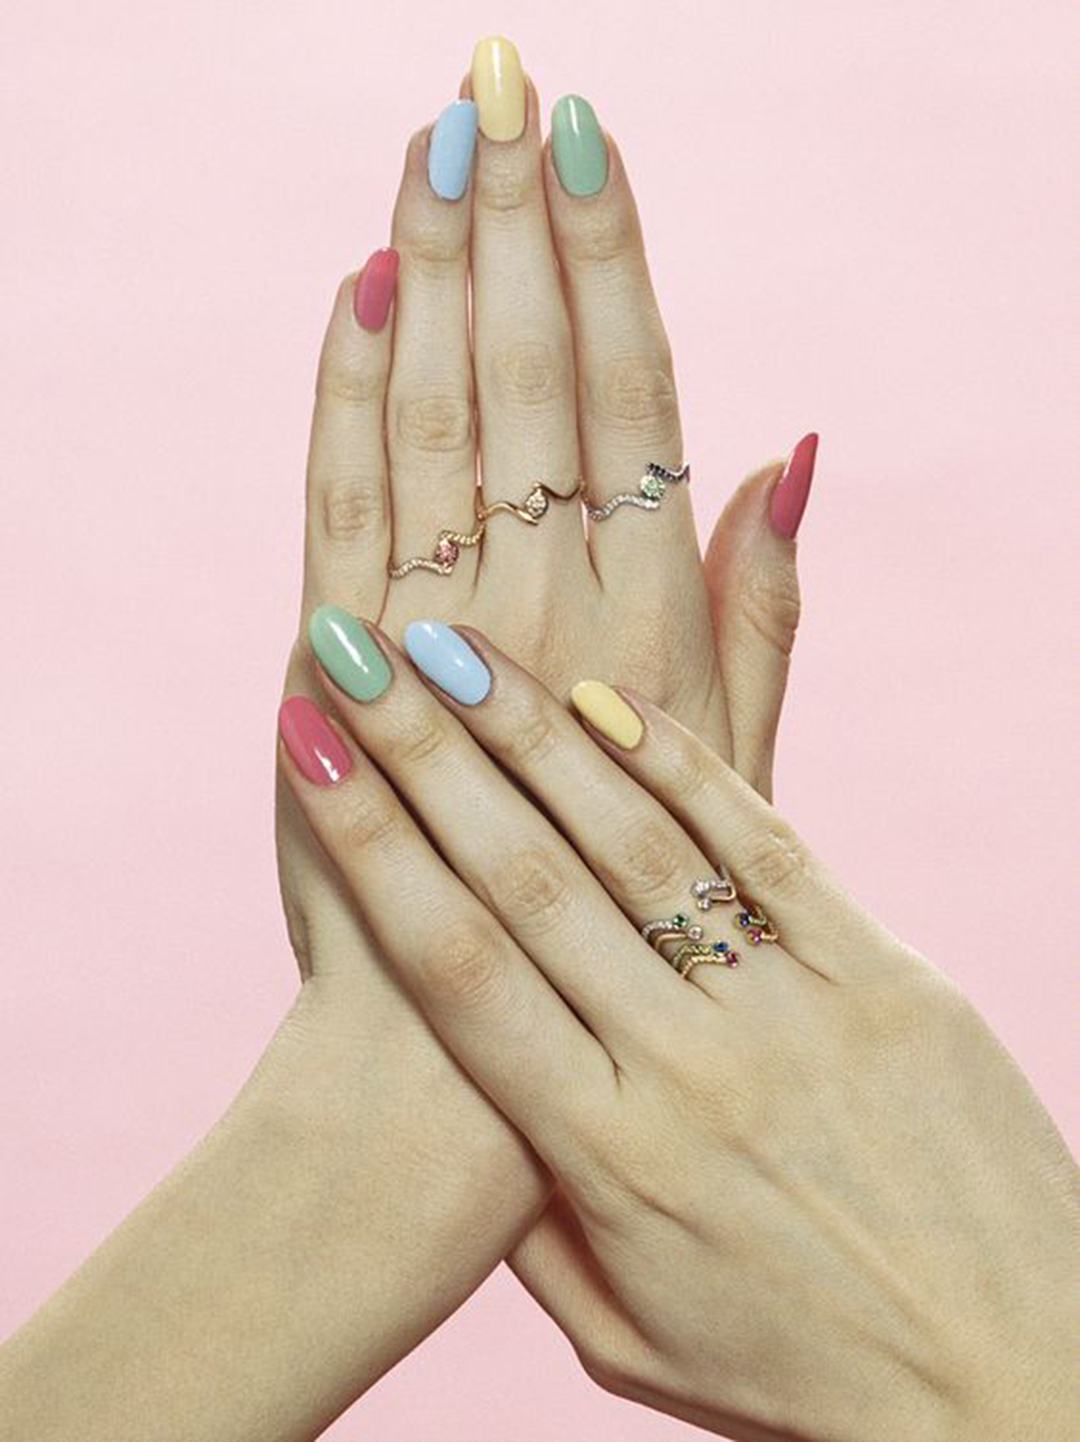 Pastel nail varnish styled for Sabine Getty jewellery for Vogue.